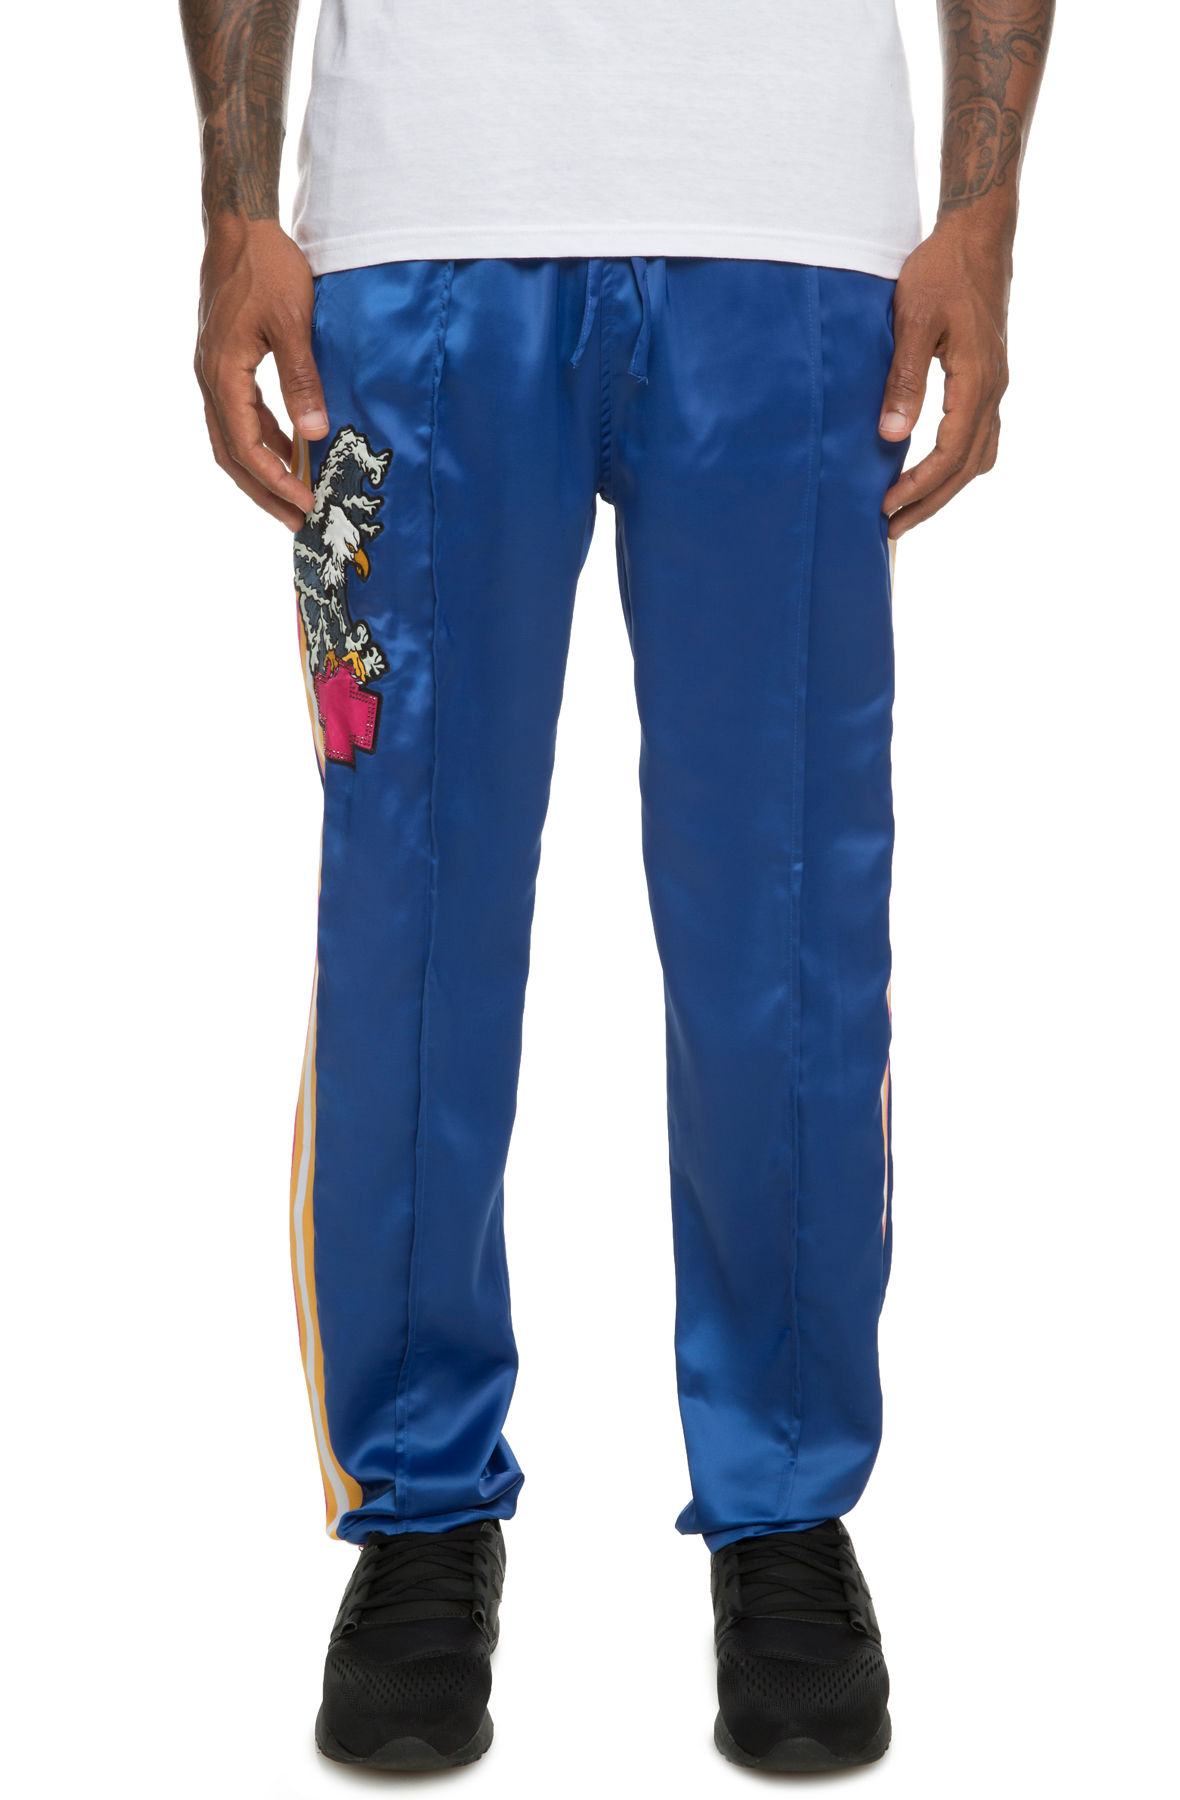 Image of The Take Flight Pants in Blue